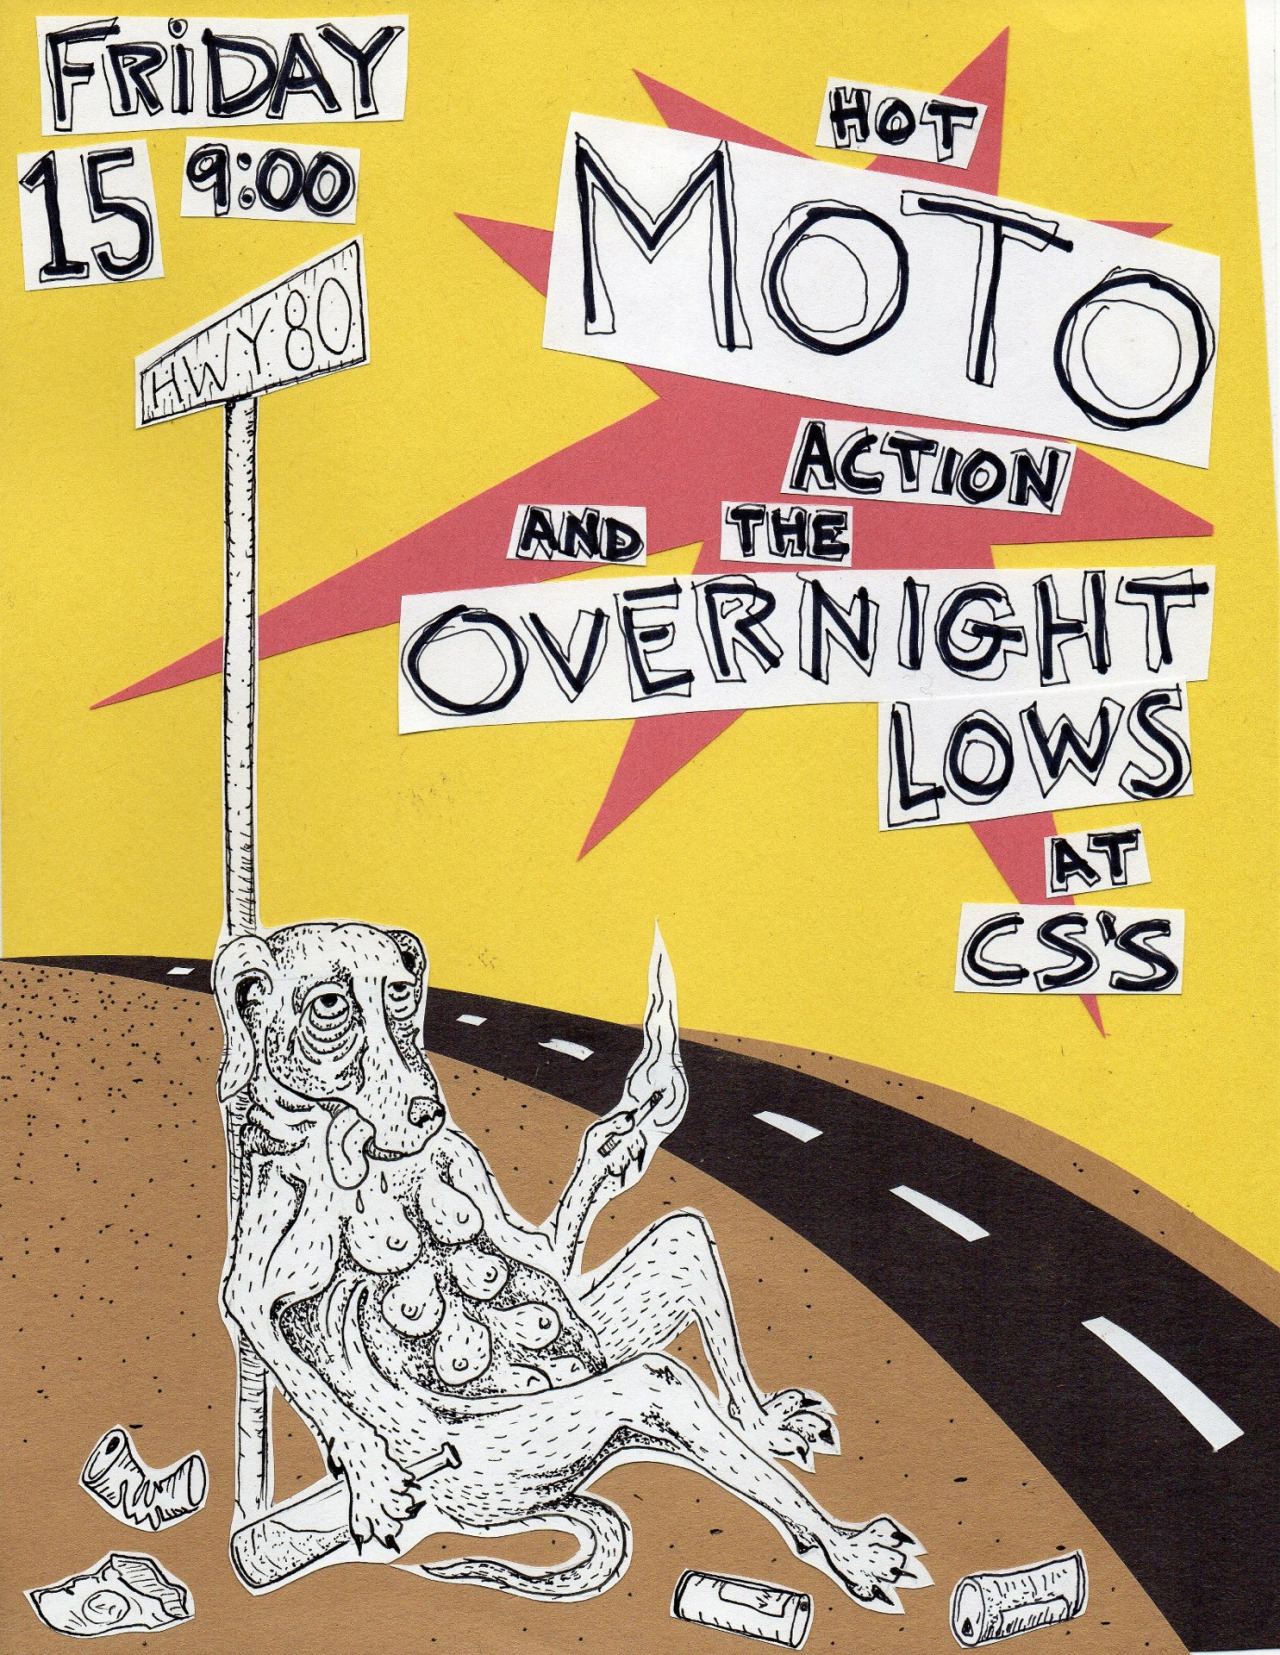 MOTO // OVERNIGHT LOWS // by MARSH NABORS